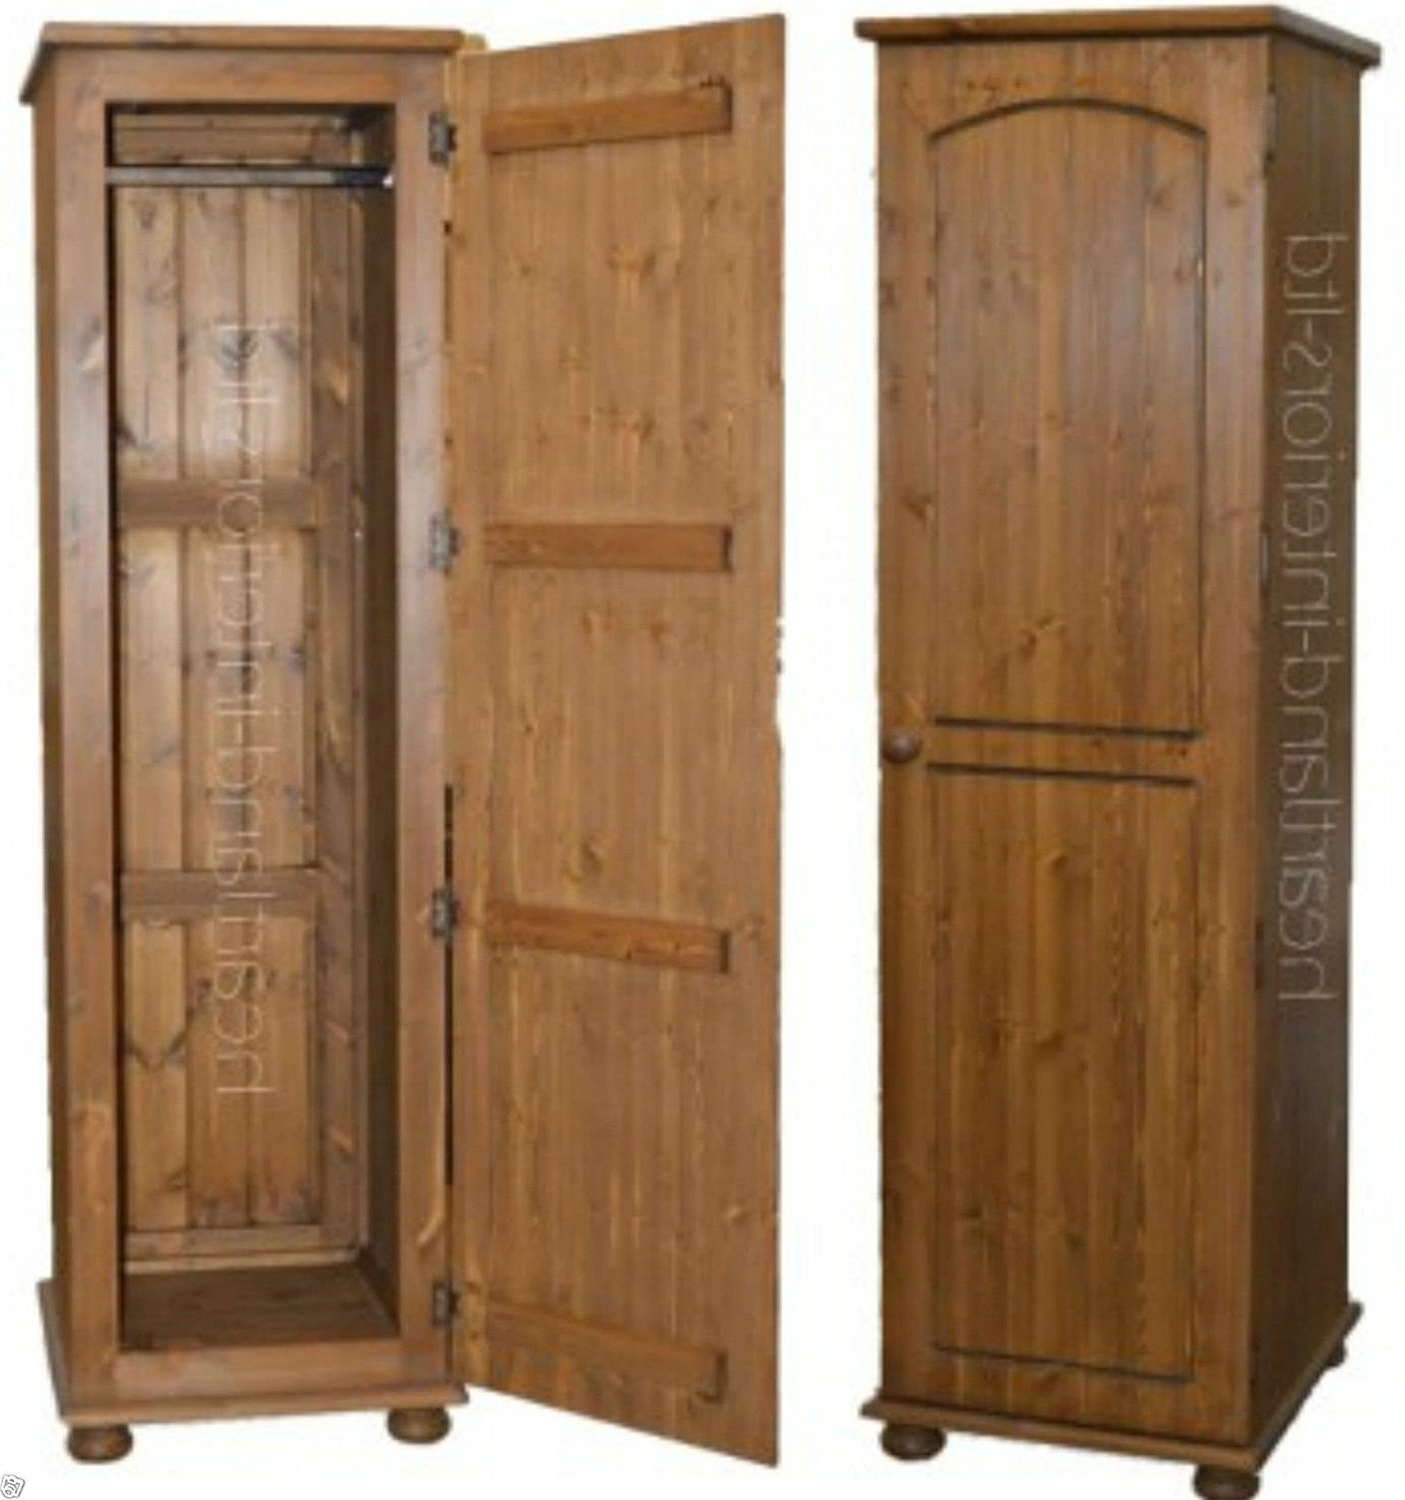 Single Door Pine Wardrobes With Current Solid Pine 1 Door Single Wardrobe, Handcrafted & Waxed Pine (View 2 of 15)